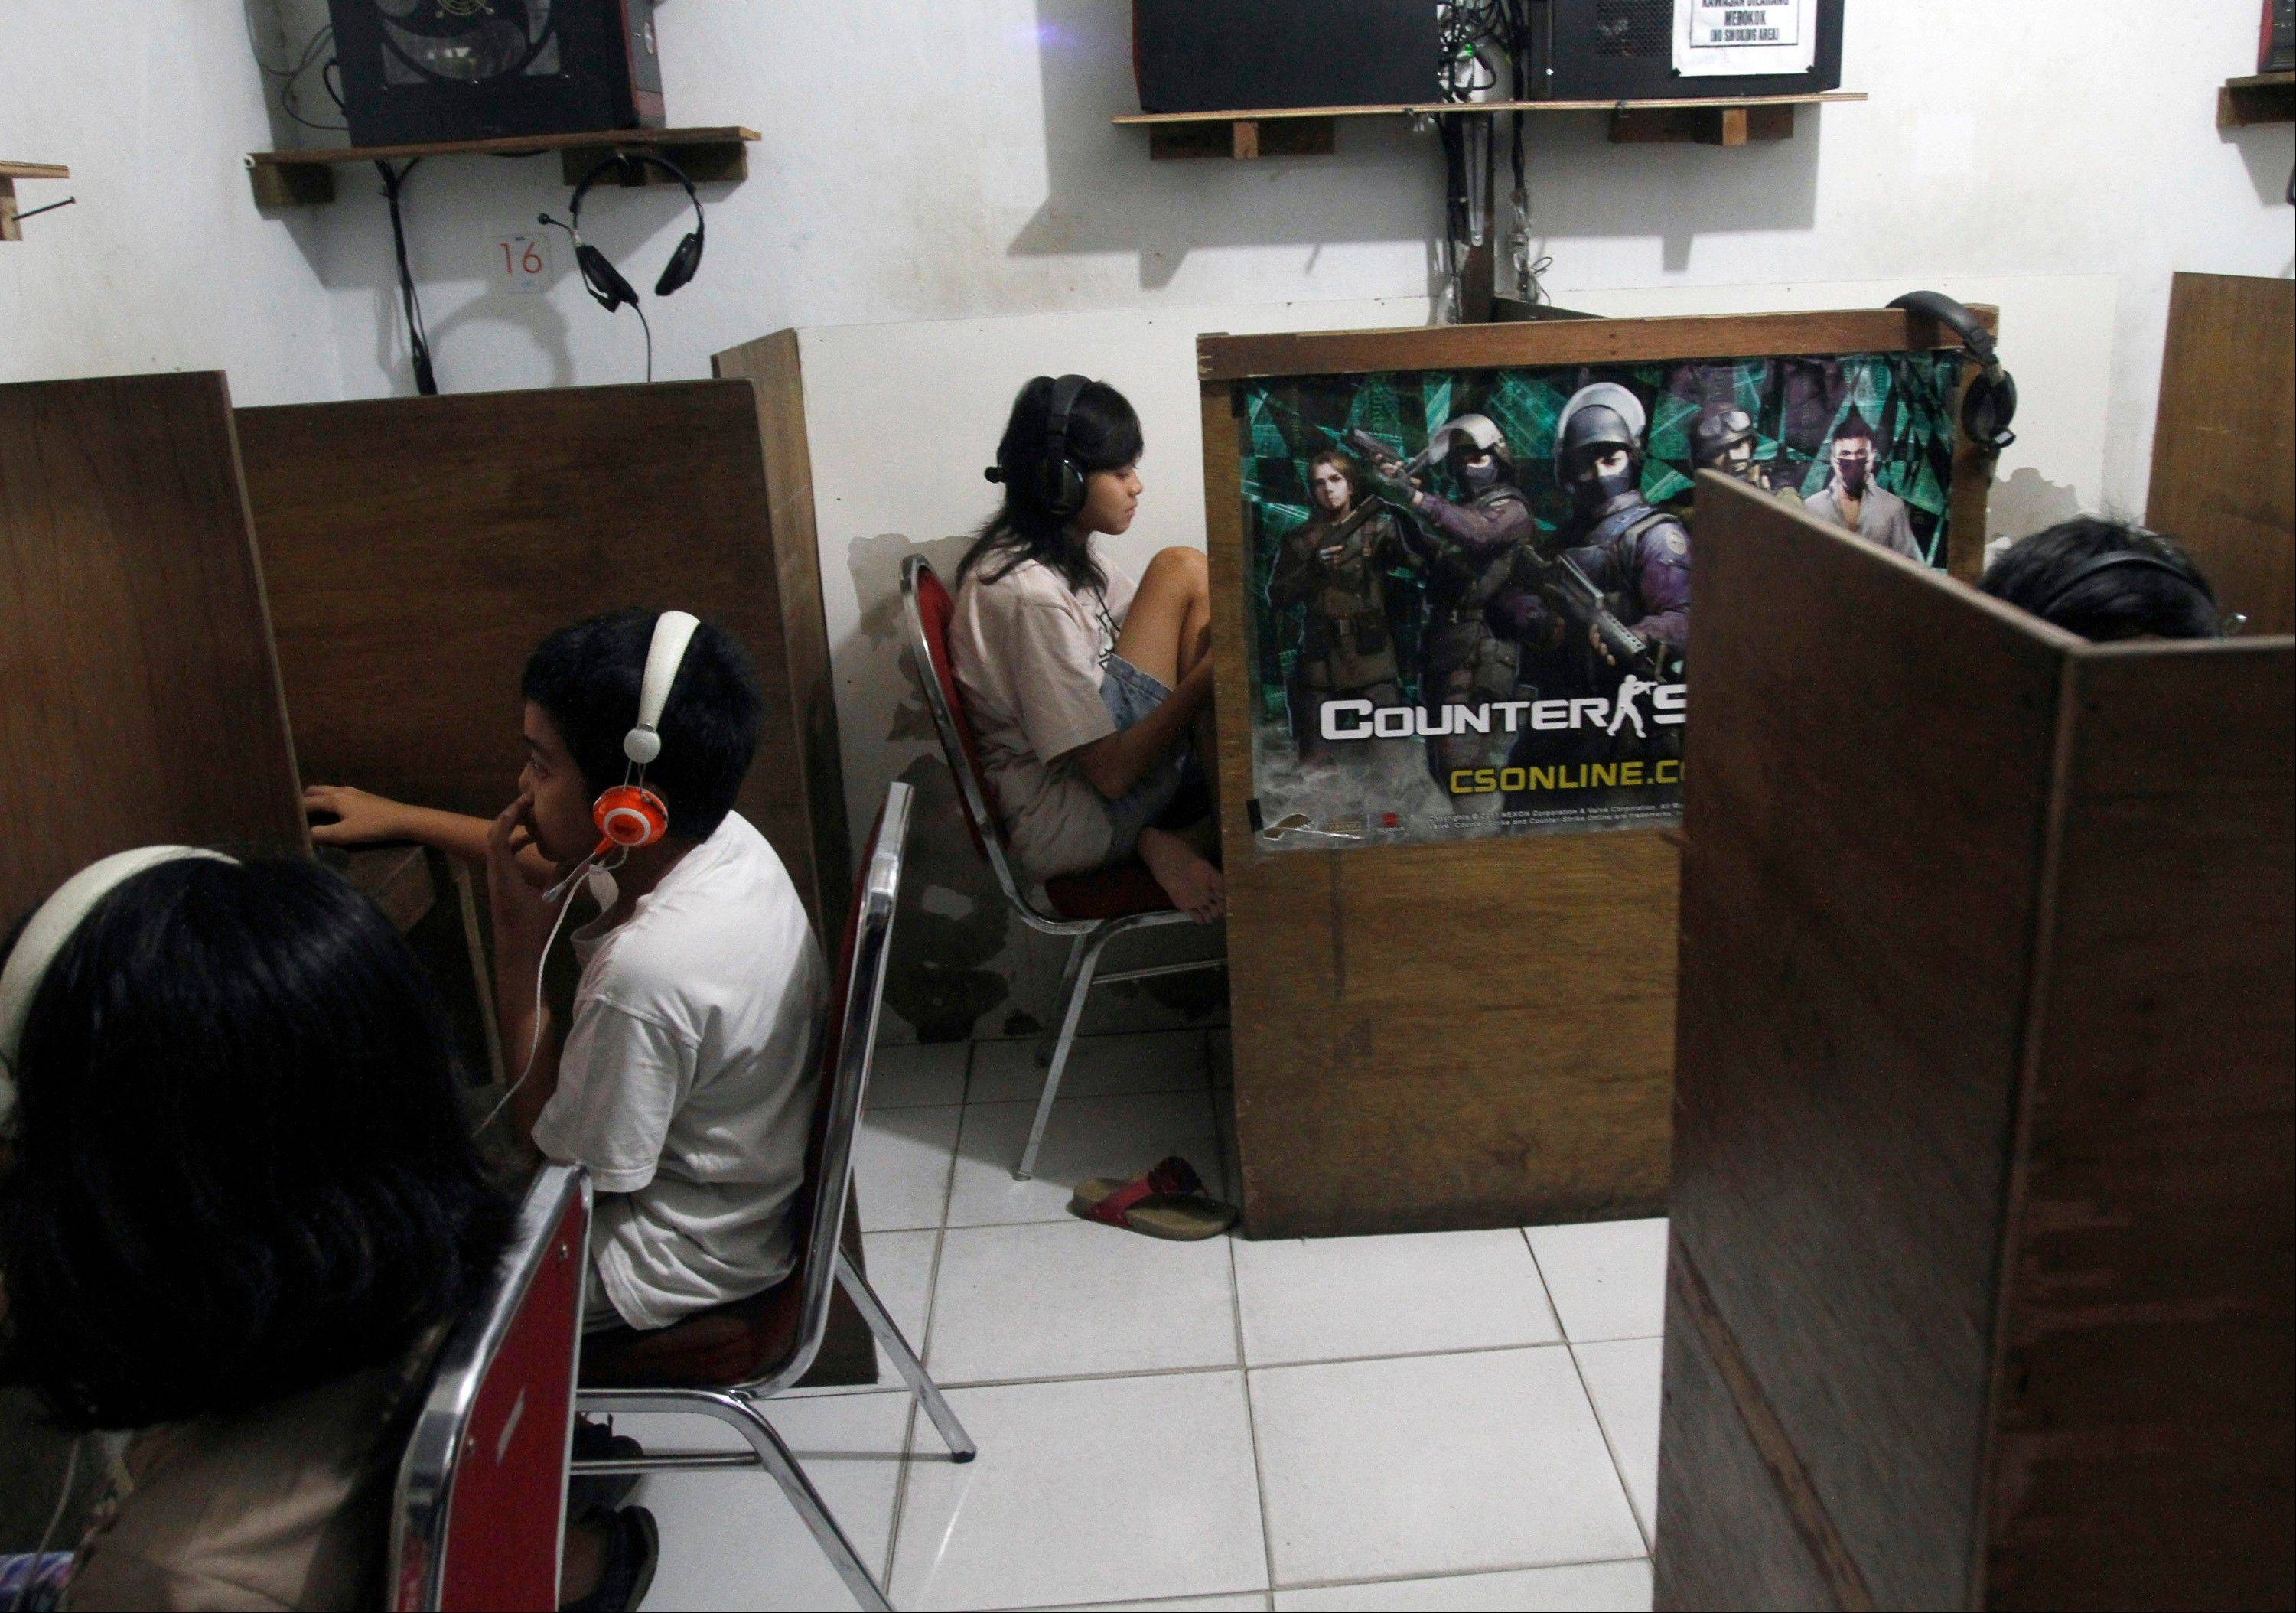 In this Friday, Oct. 19, 2012 photo, Indonesian youths browse at an internet cafe in Jakarta, Indonesia. There are growing numbers of incidents involving internet social media networks being used as a mean for children trafficking in Indonesia, at least eight reported this month alone of young girls being abducted and enslaved by men who approached them randomly on Facebook, raising concerns that the overall number of trafficked children remains grossly underestimated in the sprawling archipelago of 240 million.